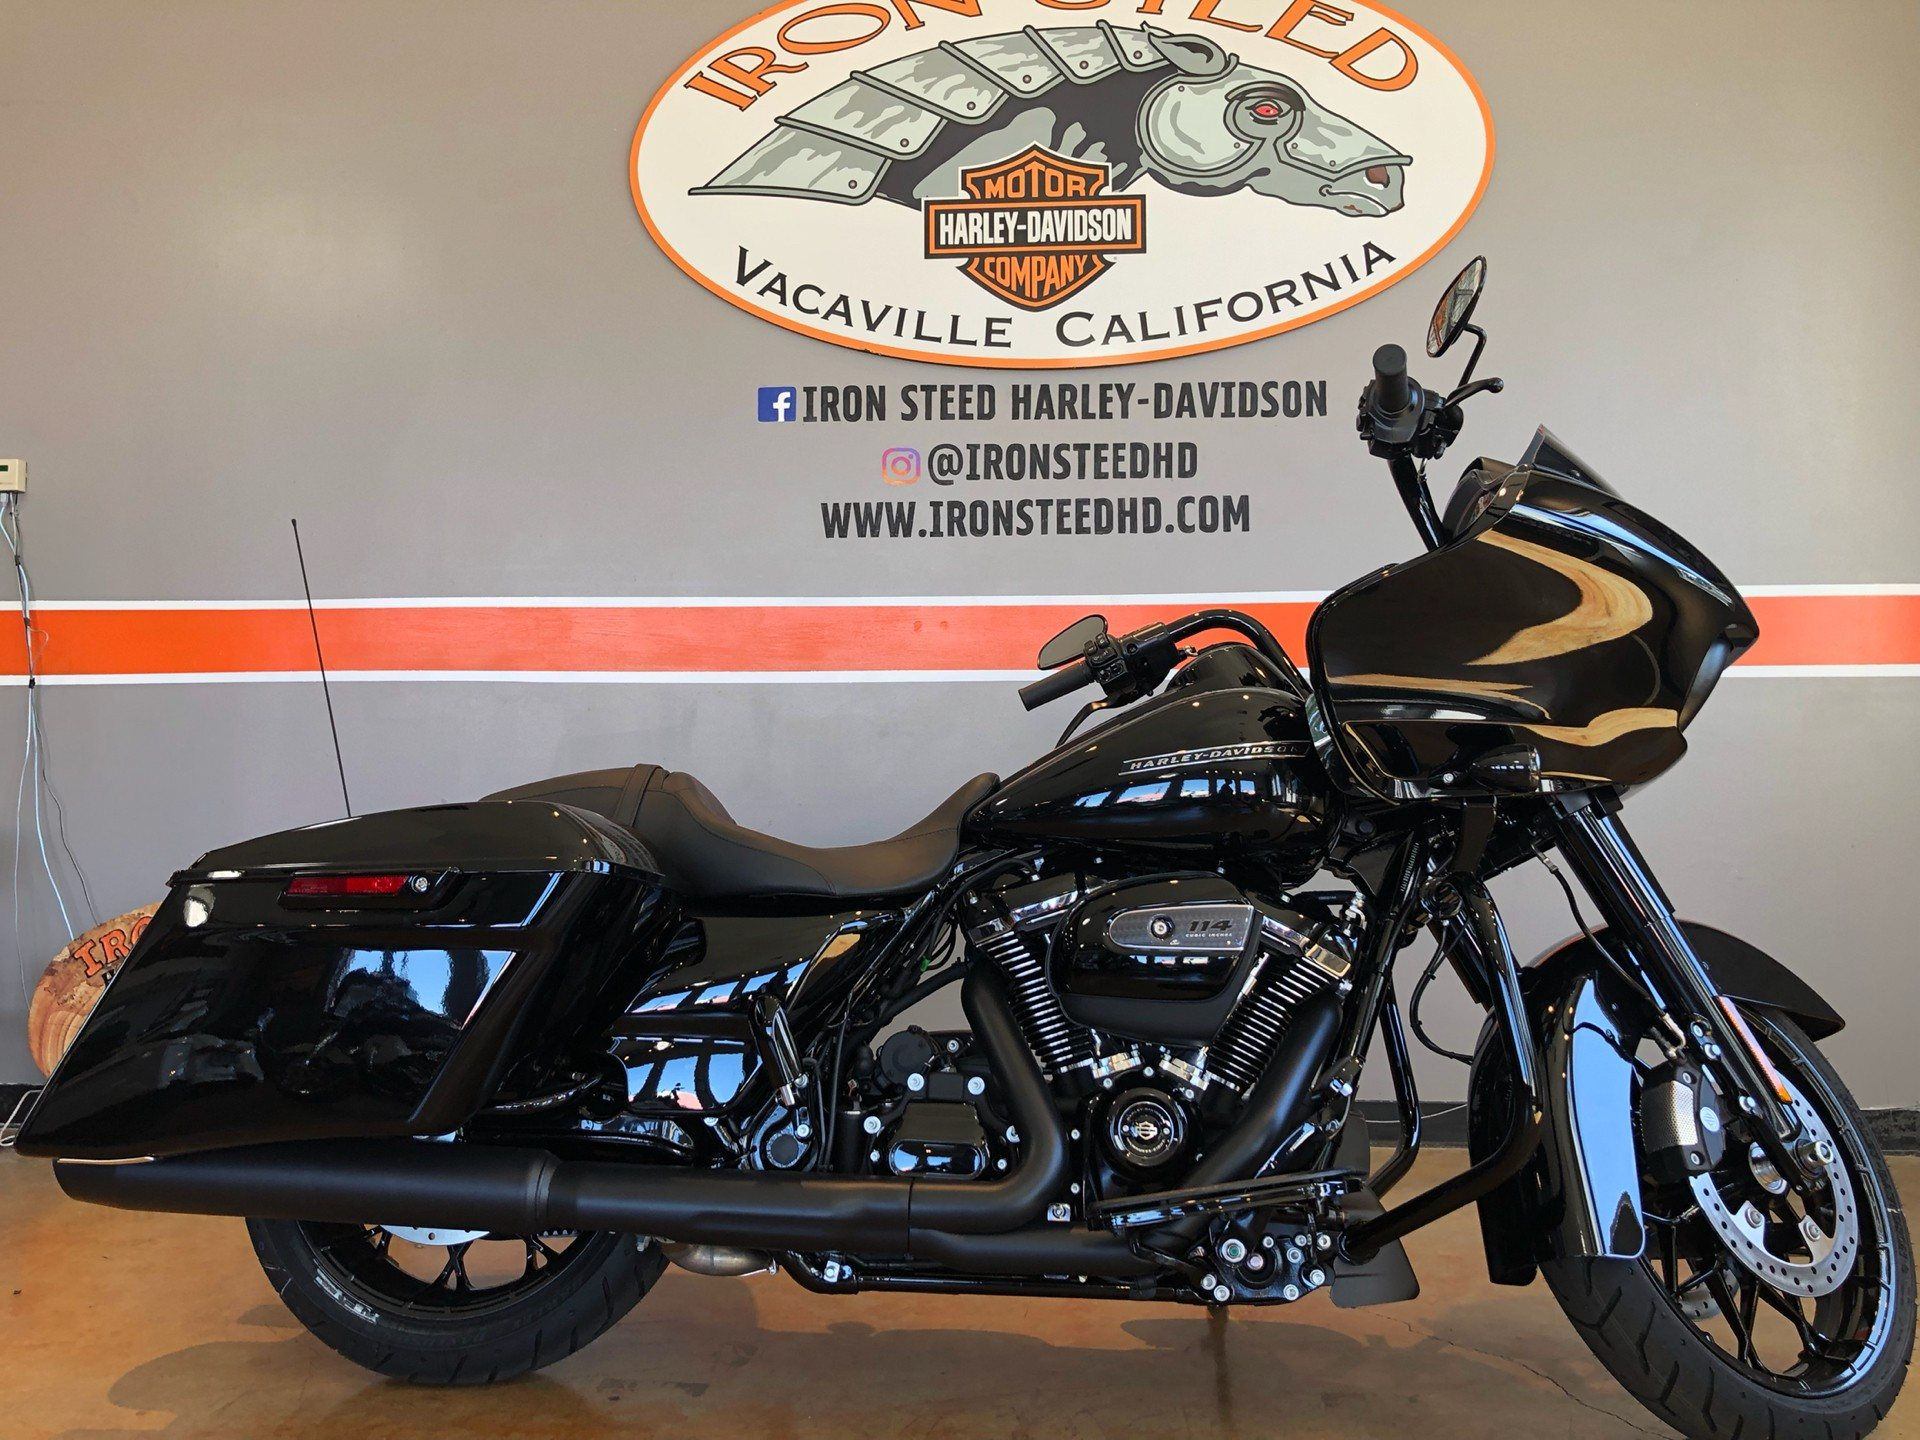 2020 Harley-Davidson Road Glide® Special in Vacaville, California - Photo 1